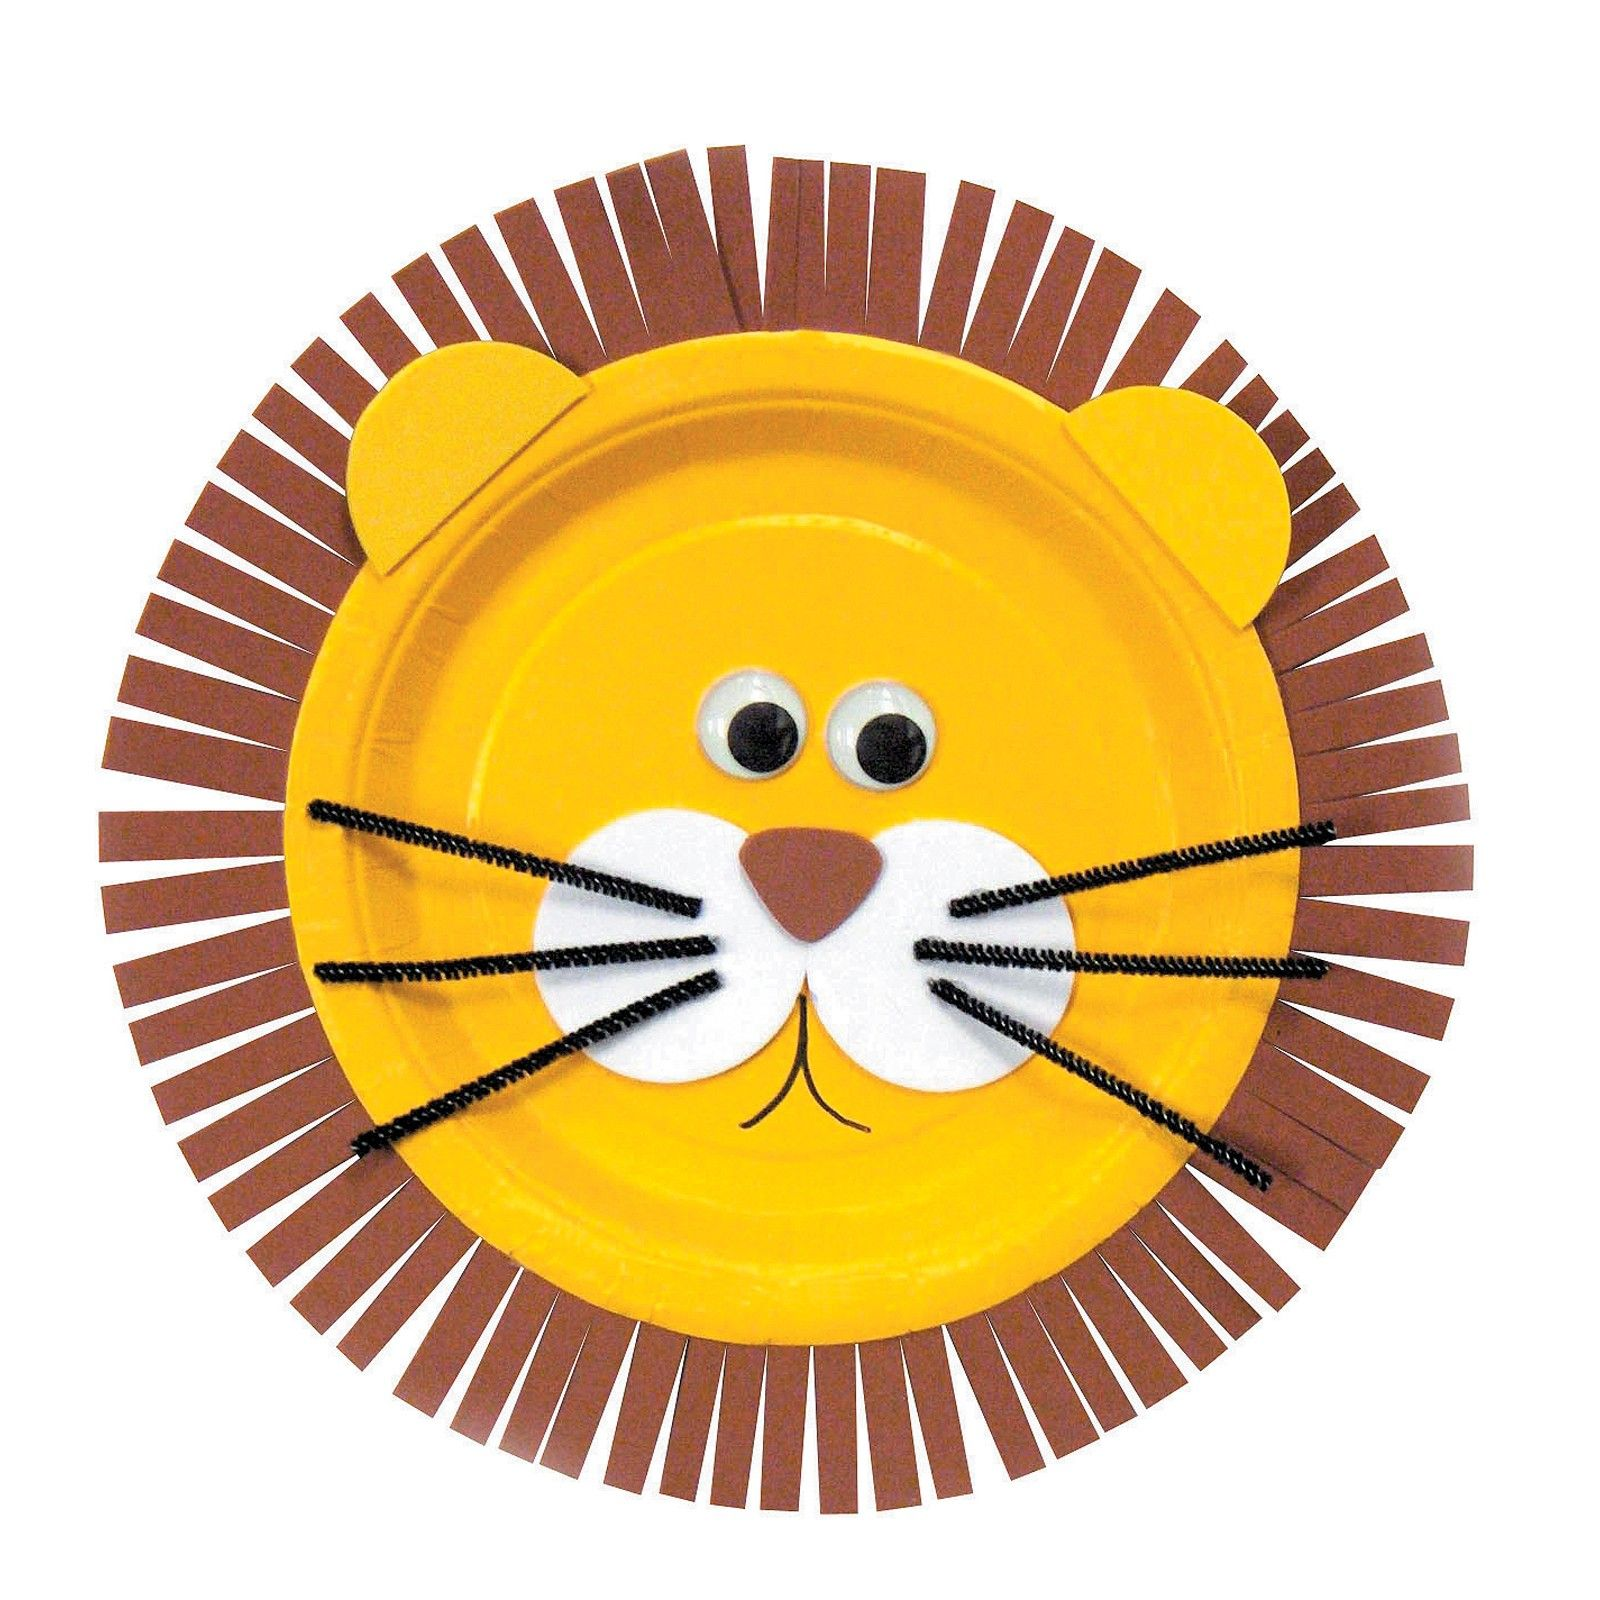 Make my own kit   one brown paper dinner plate, one yellow dessert